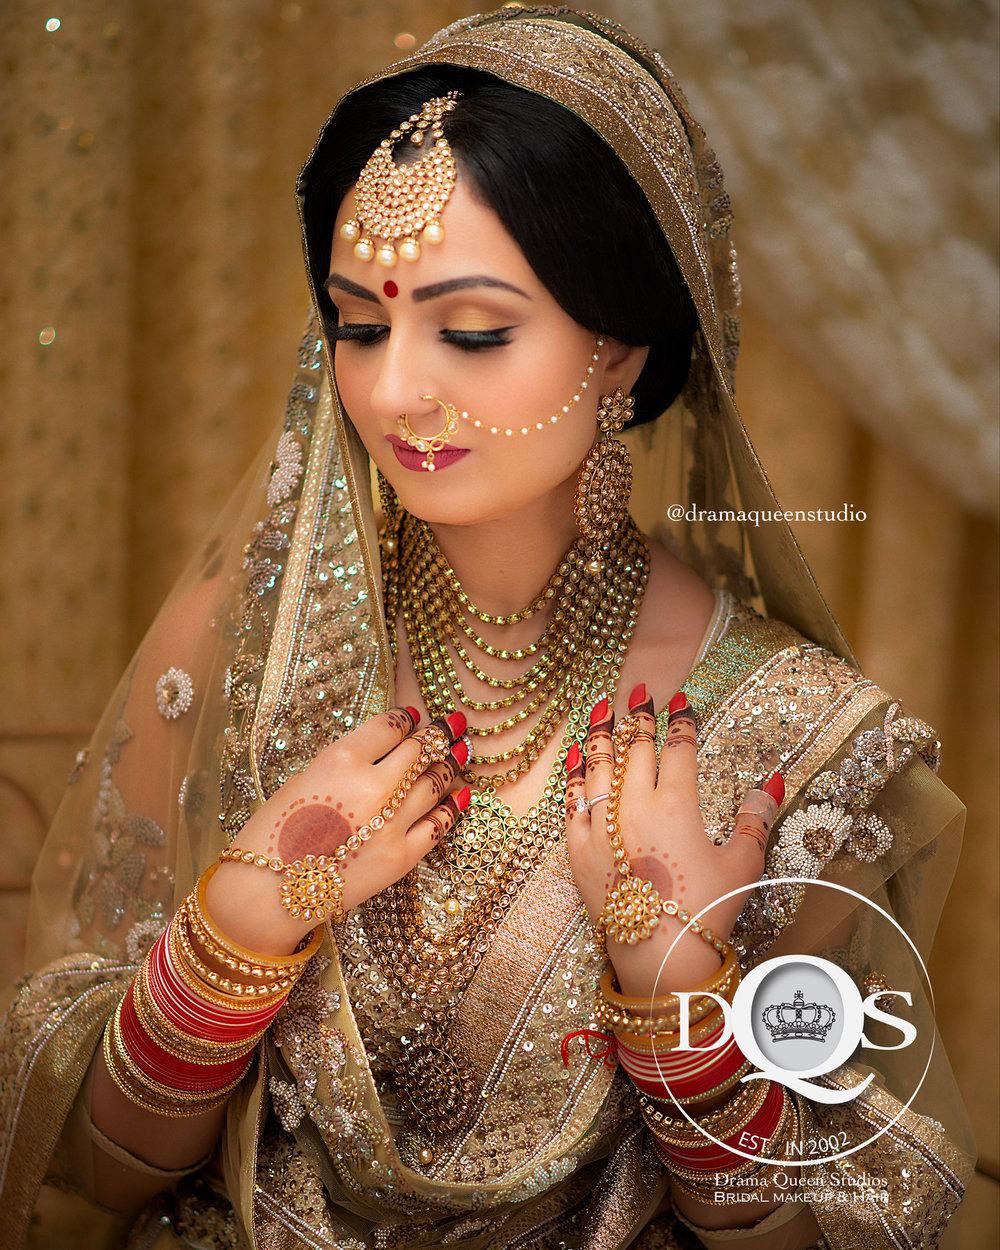 Komal on her wedding morning.  Makeup, Hair, & Dressing Drama Queen Studios: Master Artists Kiran Purewal, Assited By Kelly K